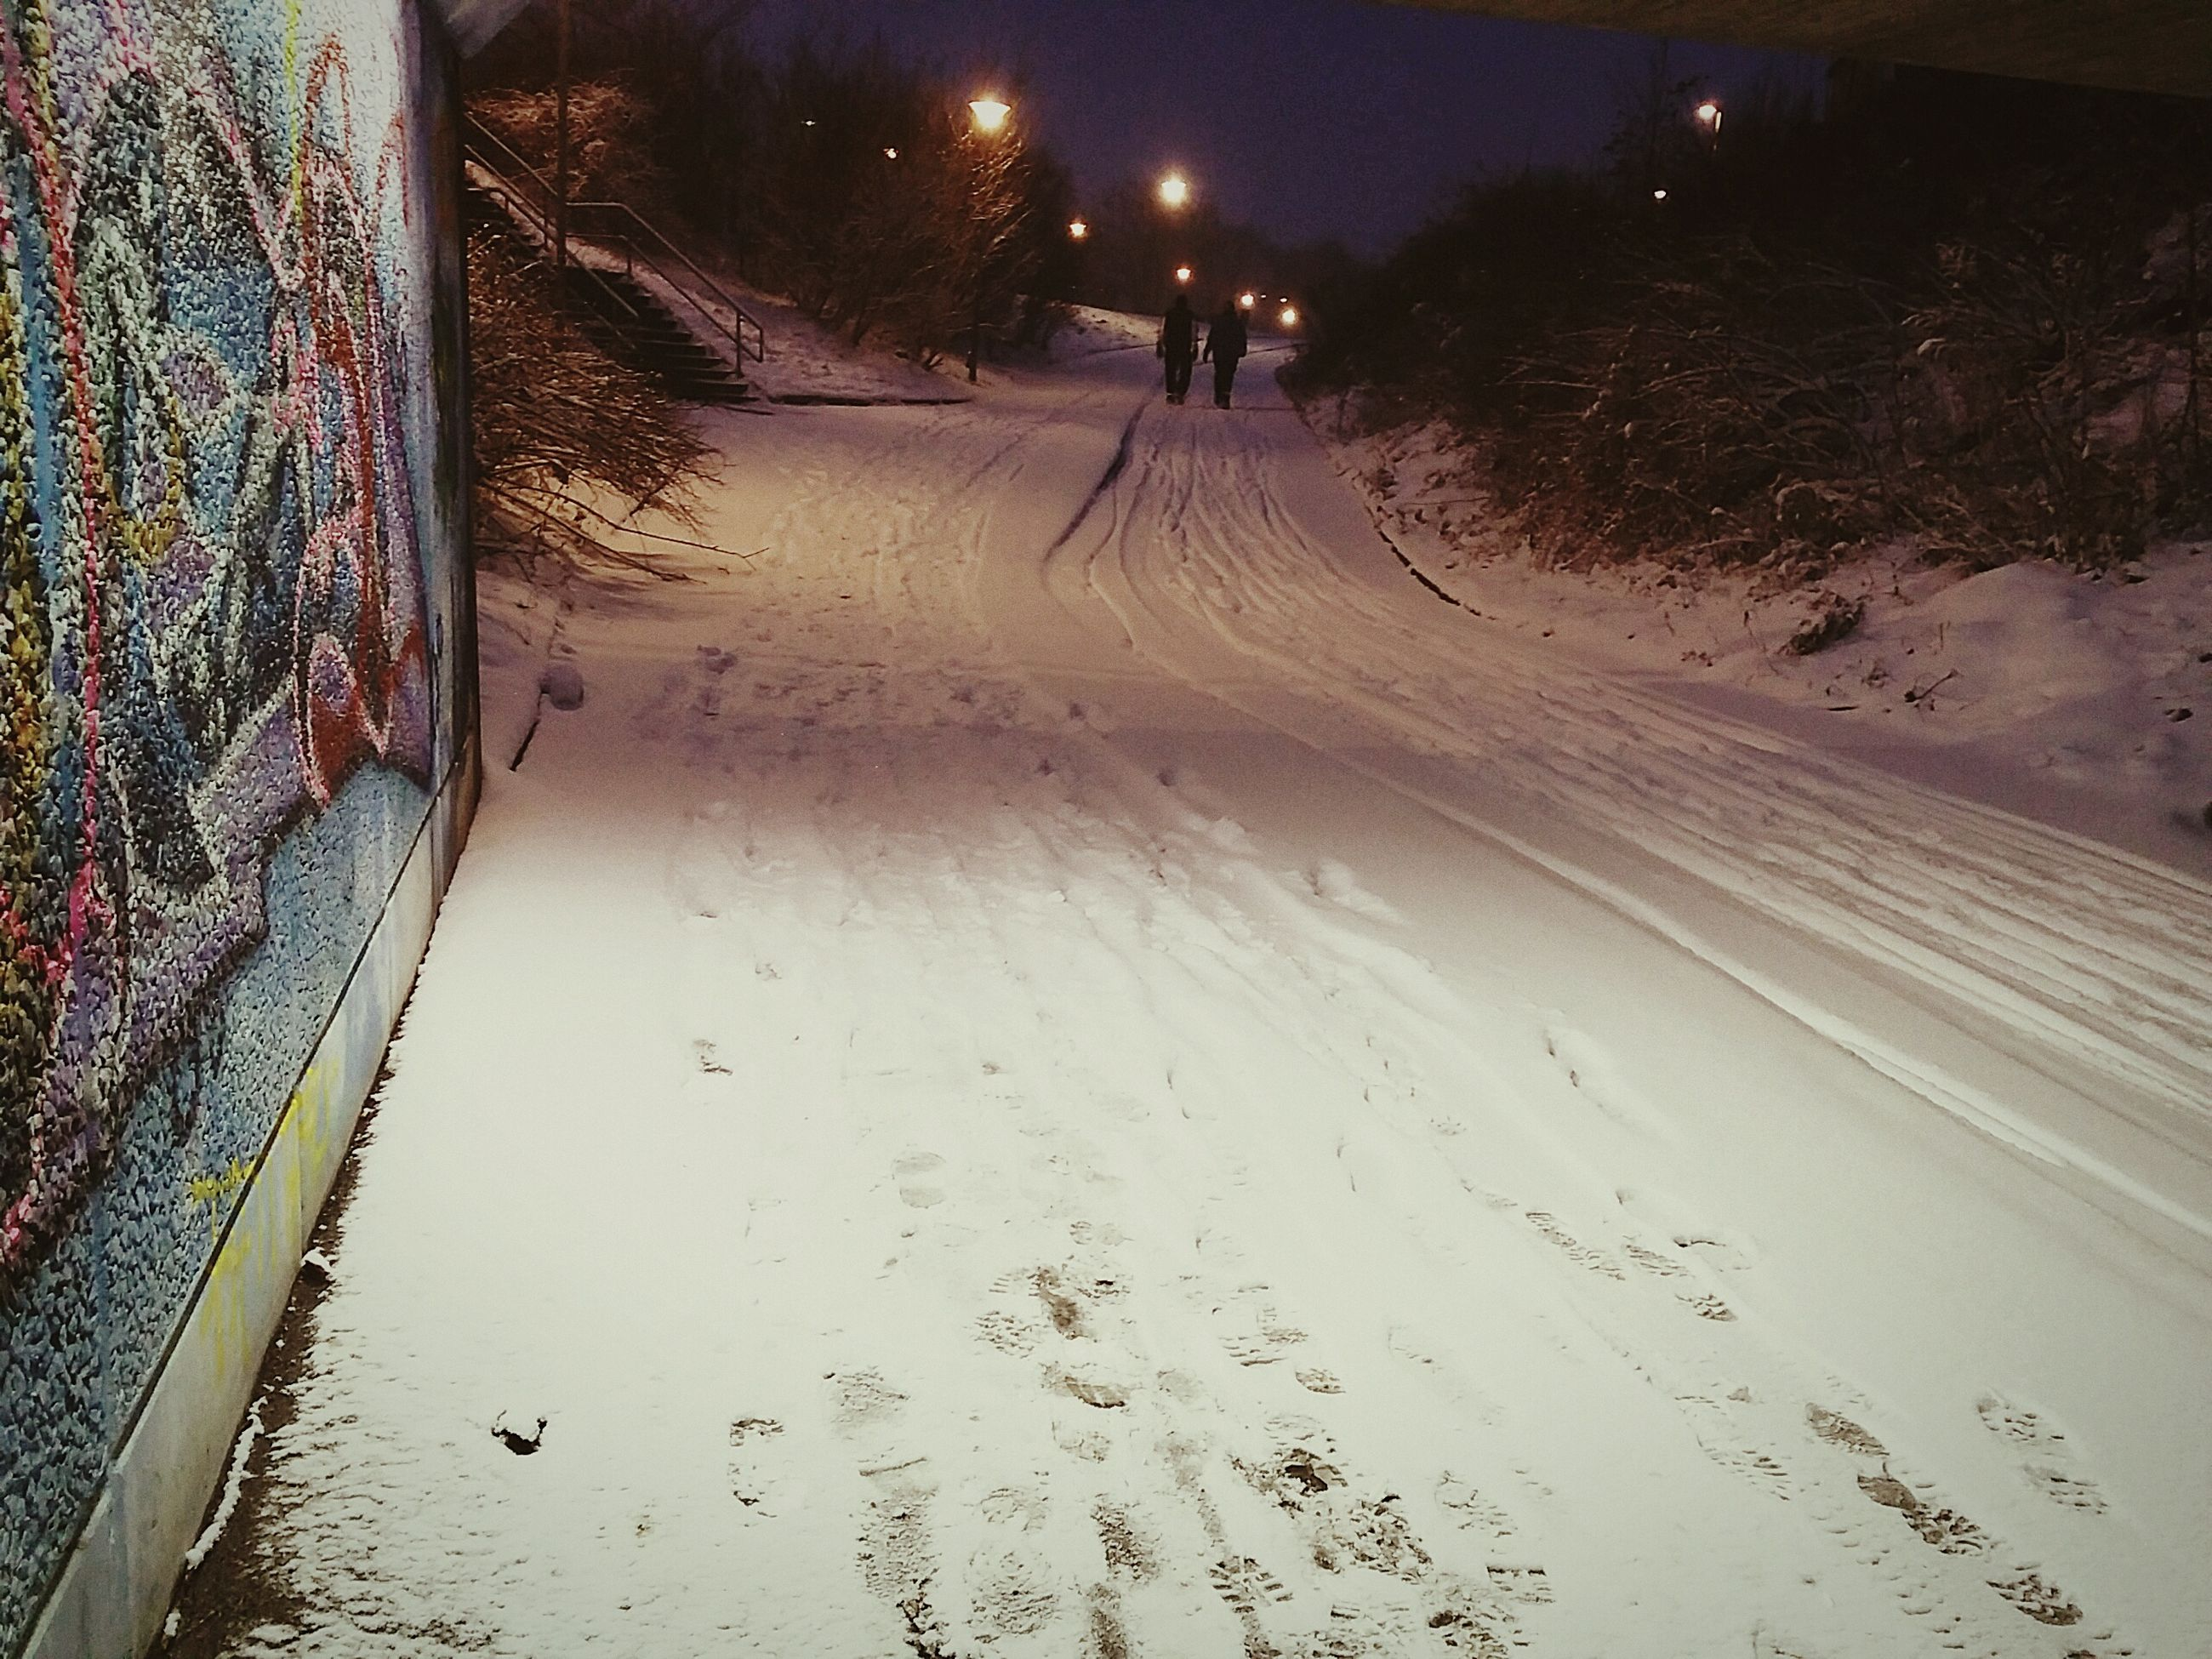 the way forward, snow, night, winter, illuminated, cold temperature, season, street, road, street light, diminishing perspective, high angle view, weather, footprint, transportation, incidental people, outdoors, vanishing point, sand, covering